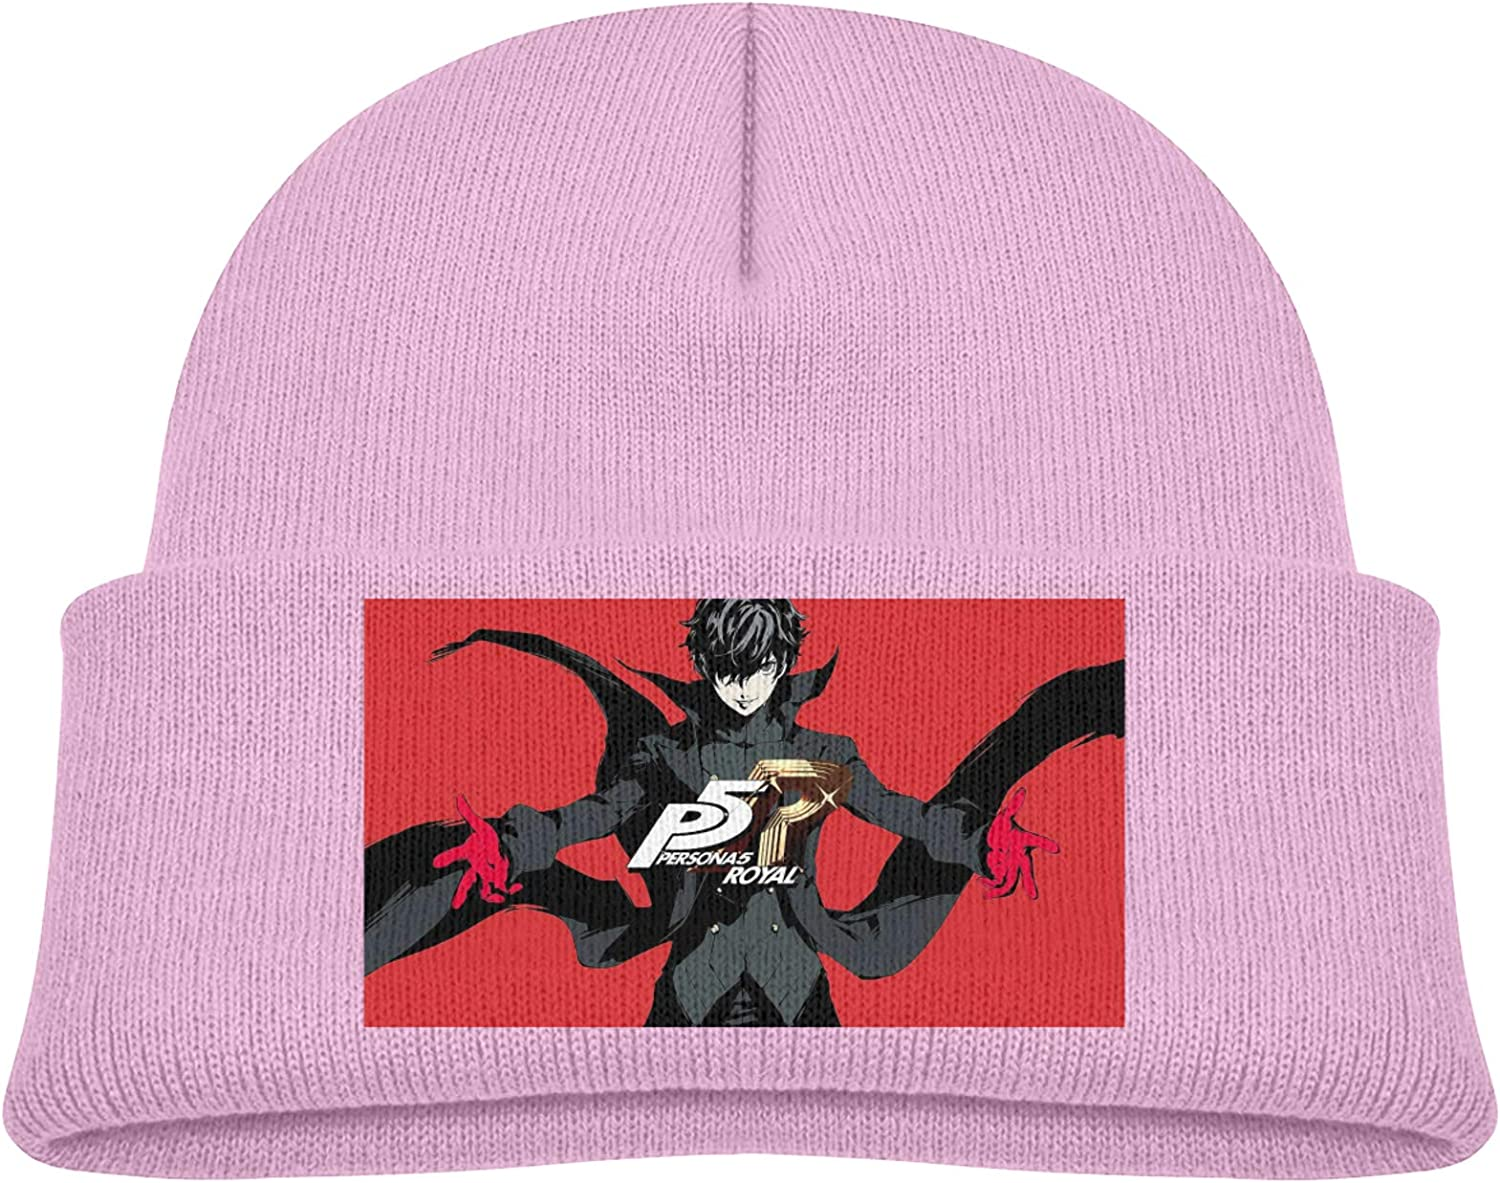 Persona 5 Royal Kids Stretchy Hedging Hat Skull Cap Winter Warm Cap Cover Ears Beanie,Child Knit Cap